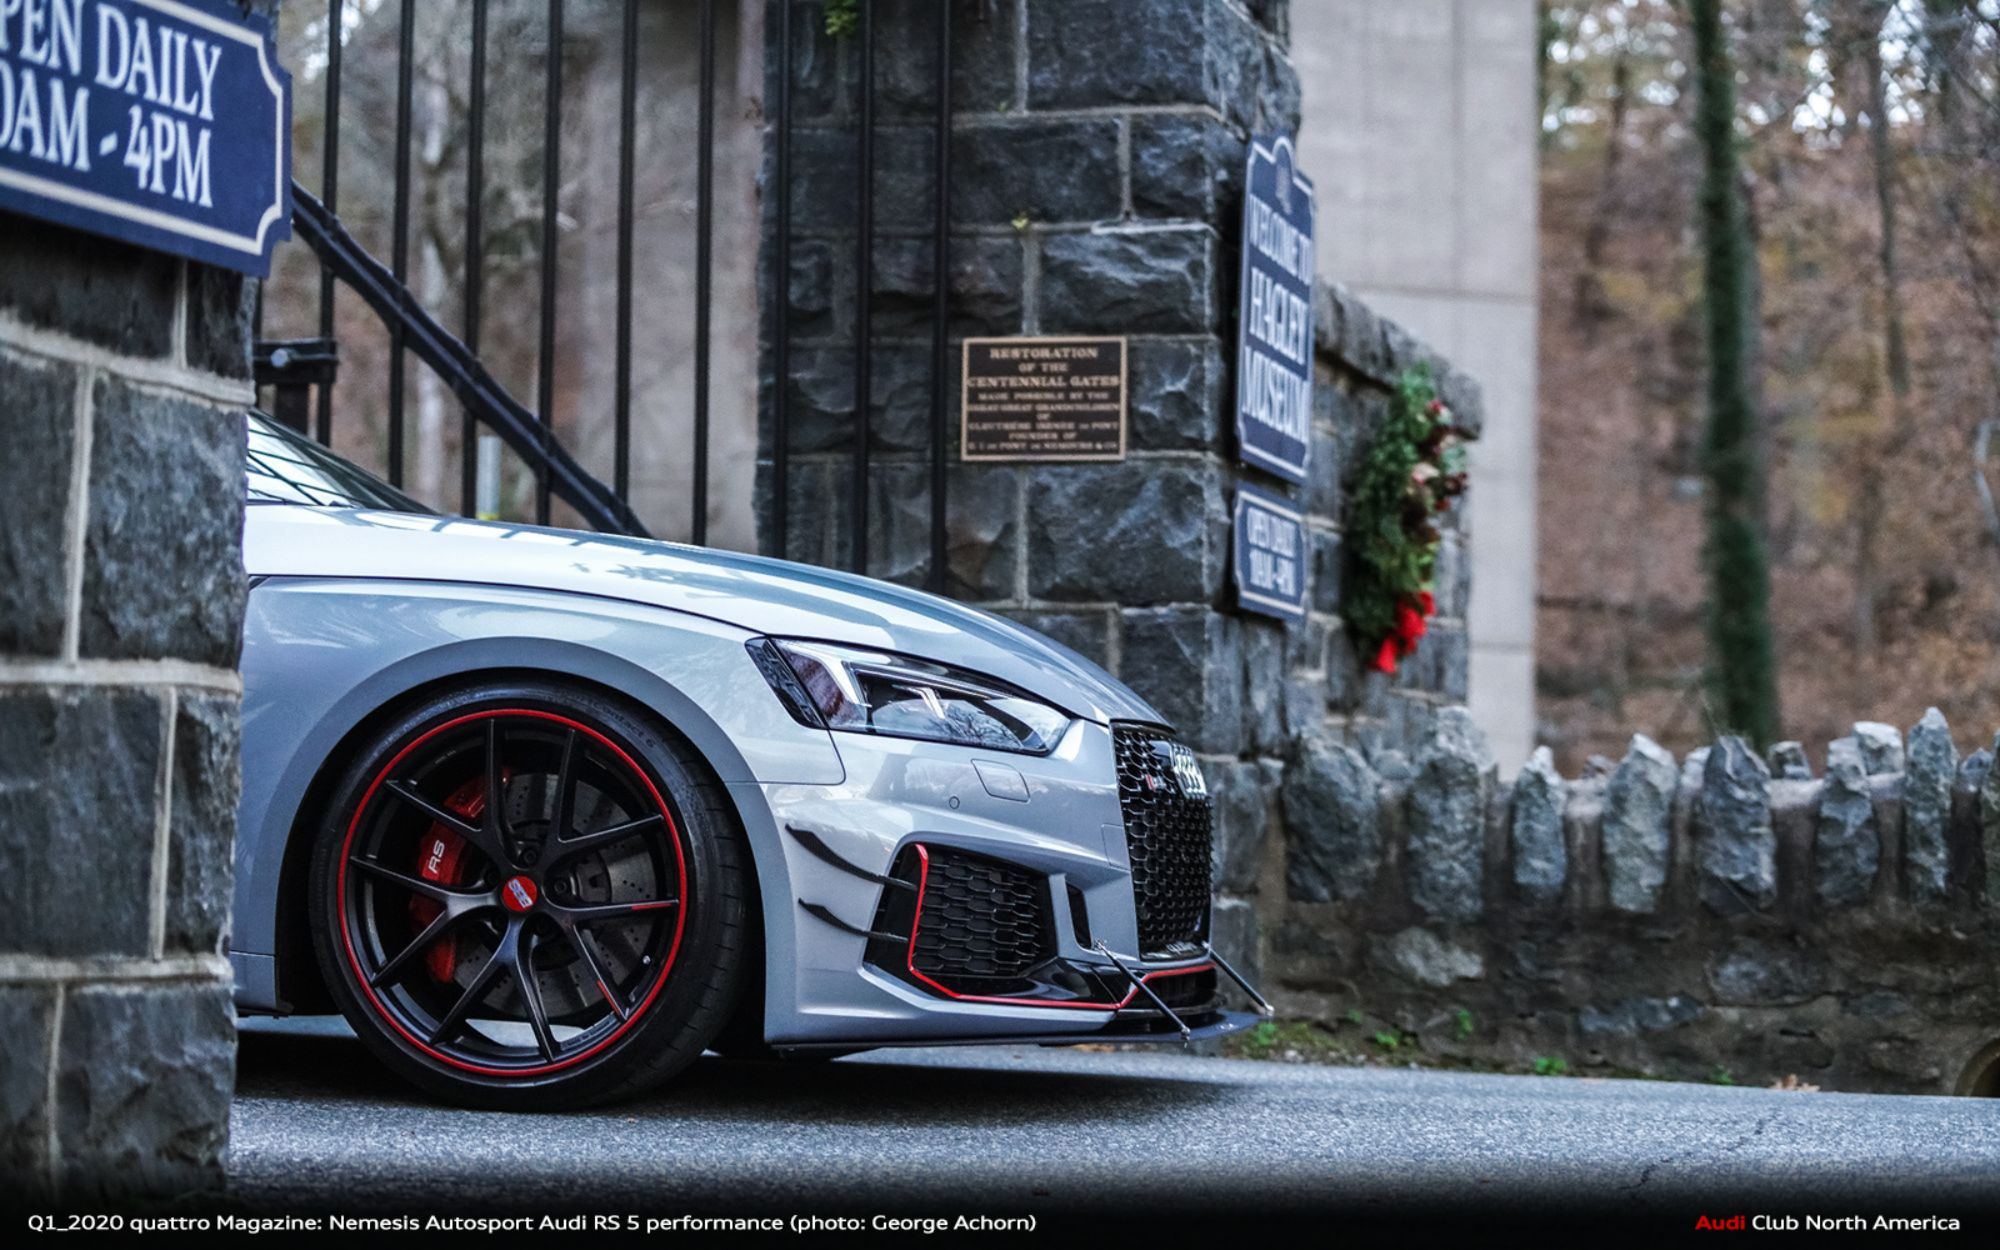 Q1_2020 quattro Magazine Feature: Nemesis Autosport Audi RS 5 performance at a Crossroads